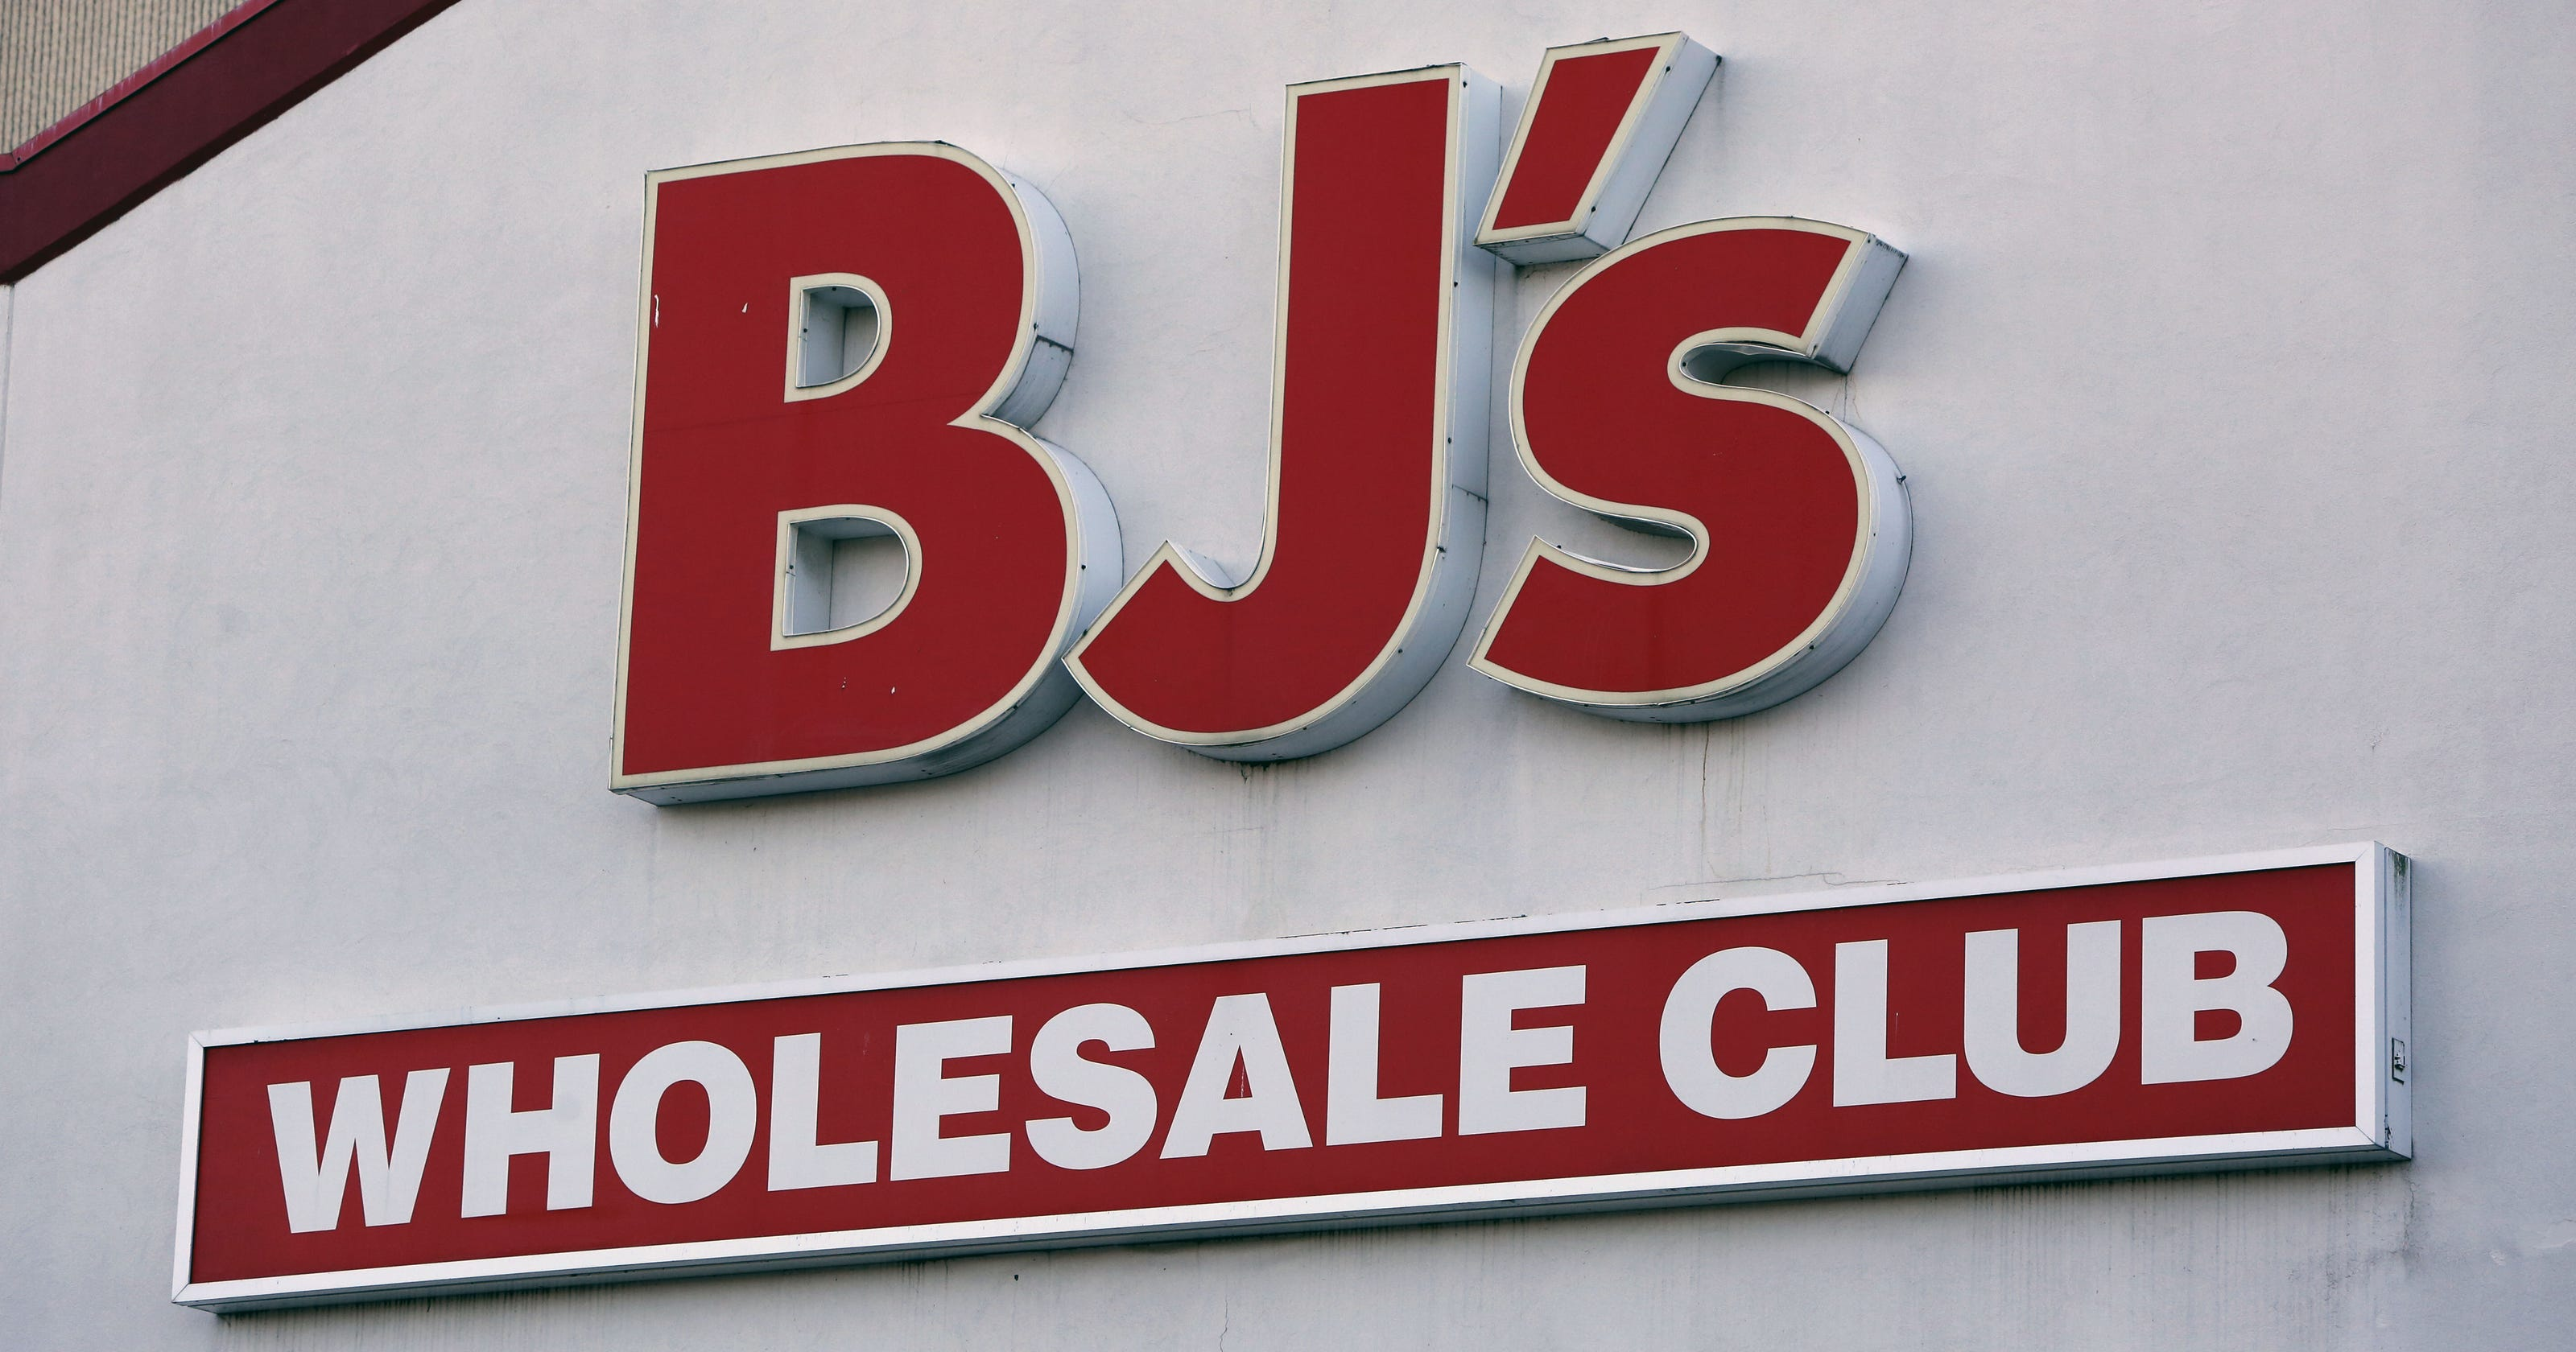 Grocery Delivery Service Coming To Bjs In Millsboro